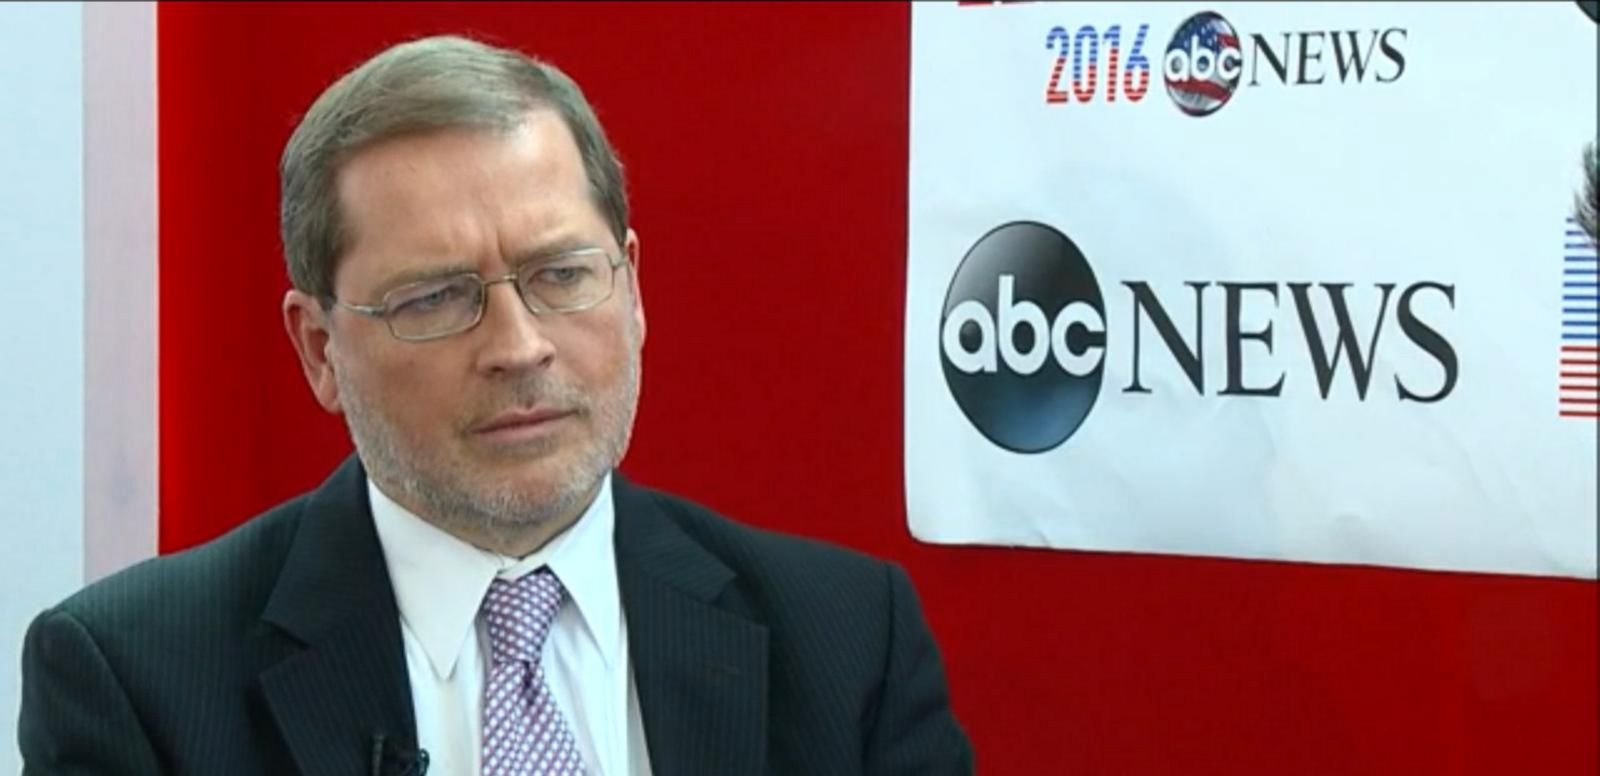 VIDEO: Grover Norquist Says It's a 'Little Bit' Like Being a Rock Star When He's at CPAC